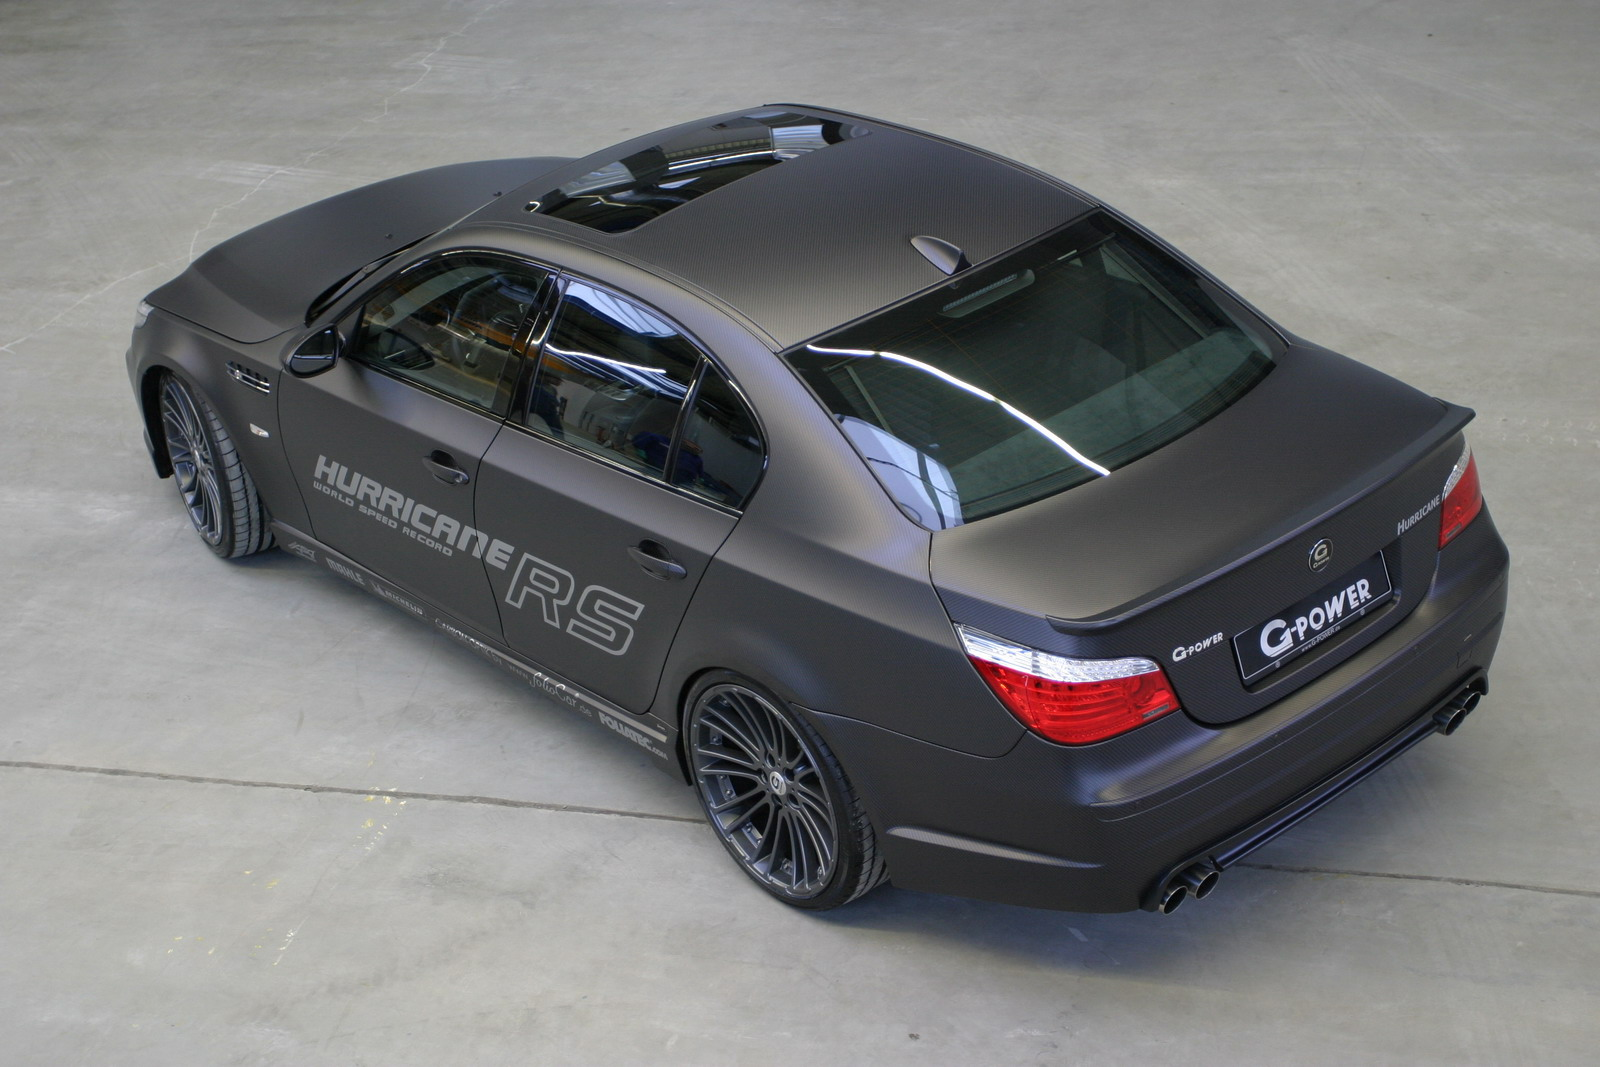 g power bmw hurricane rs e60 picture 61323 g power photo gallery. Black Bedroom Furniture Sets. Home Design Ideas